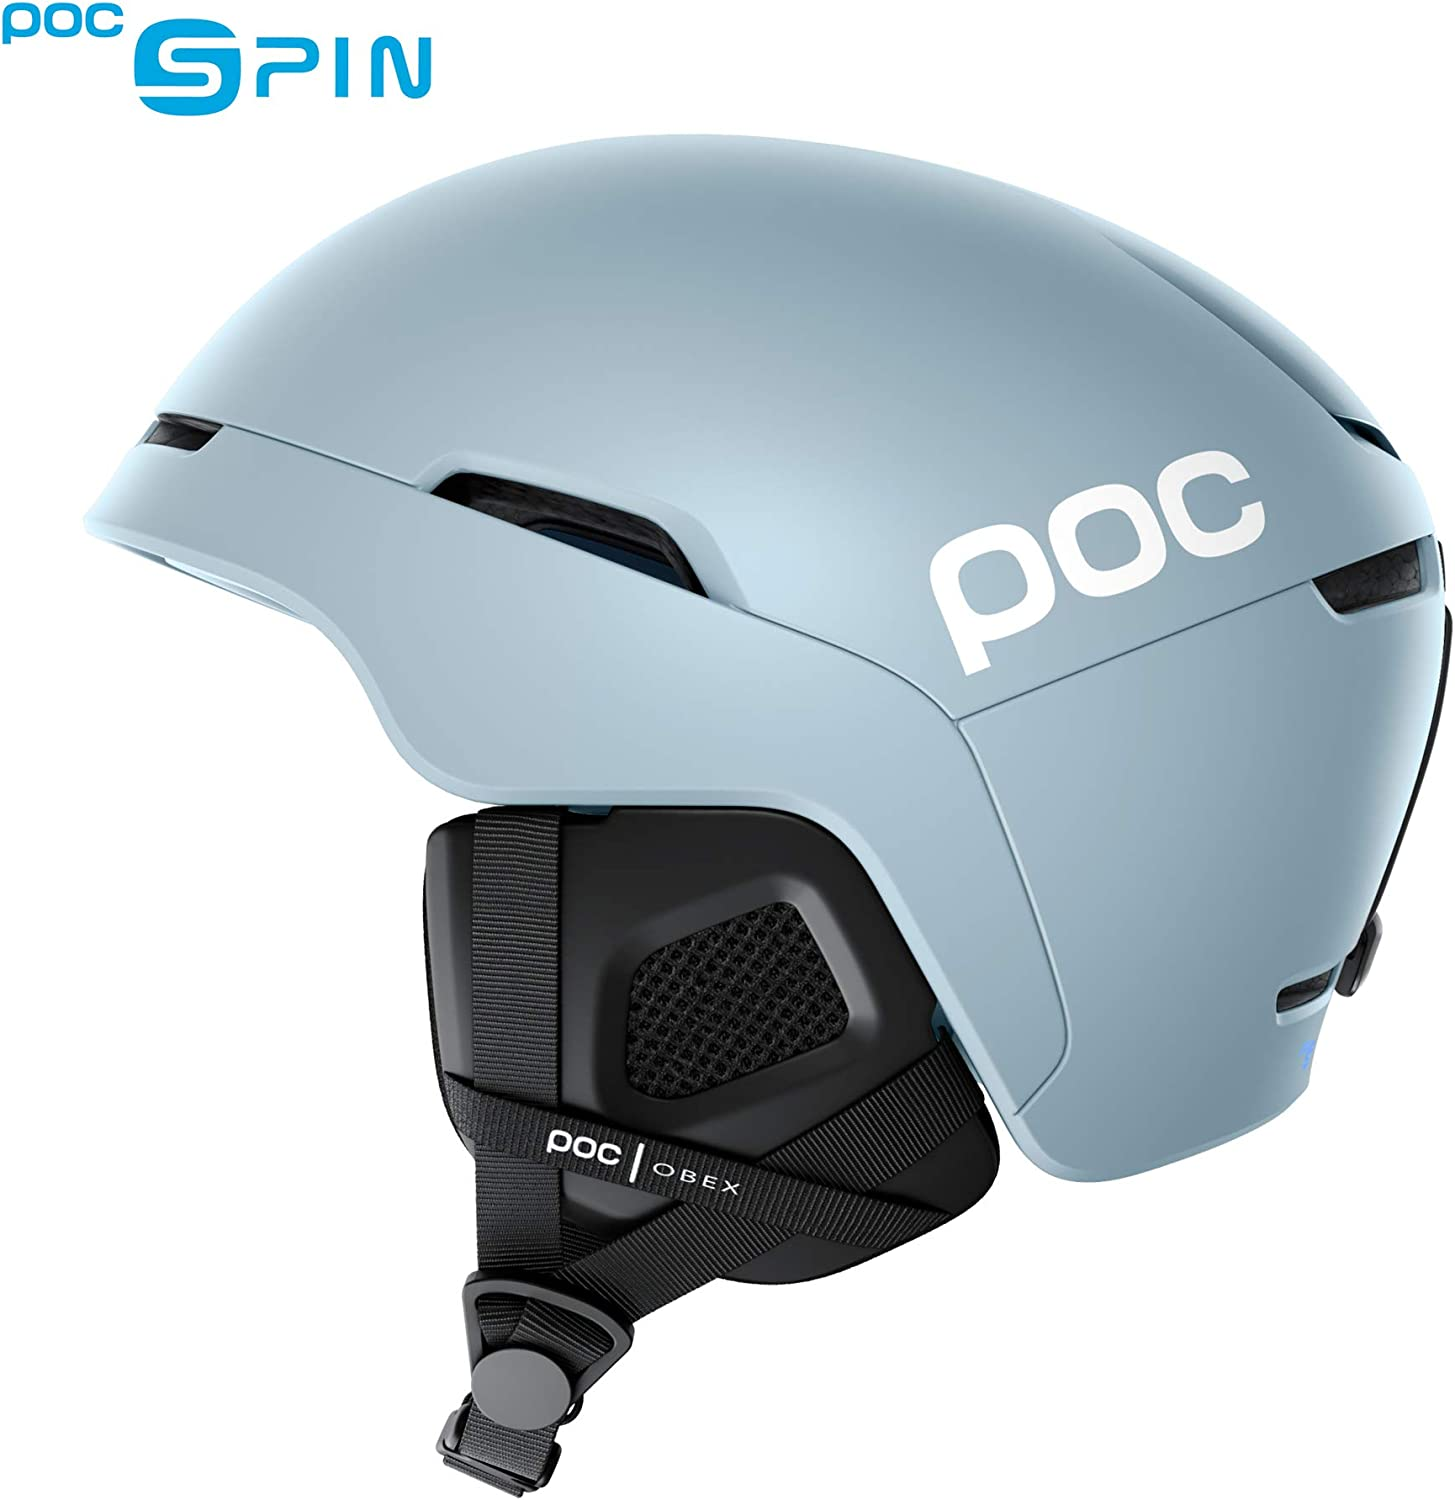 POC – Obex SPIN Snowboard and Ski Helmet for Resort and Backcountry Riding, Breathable and Adjustable